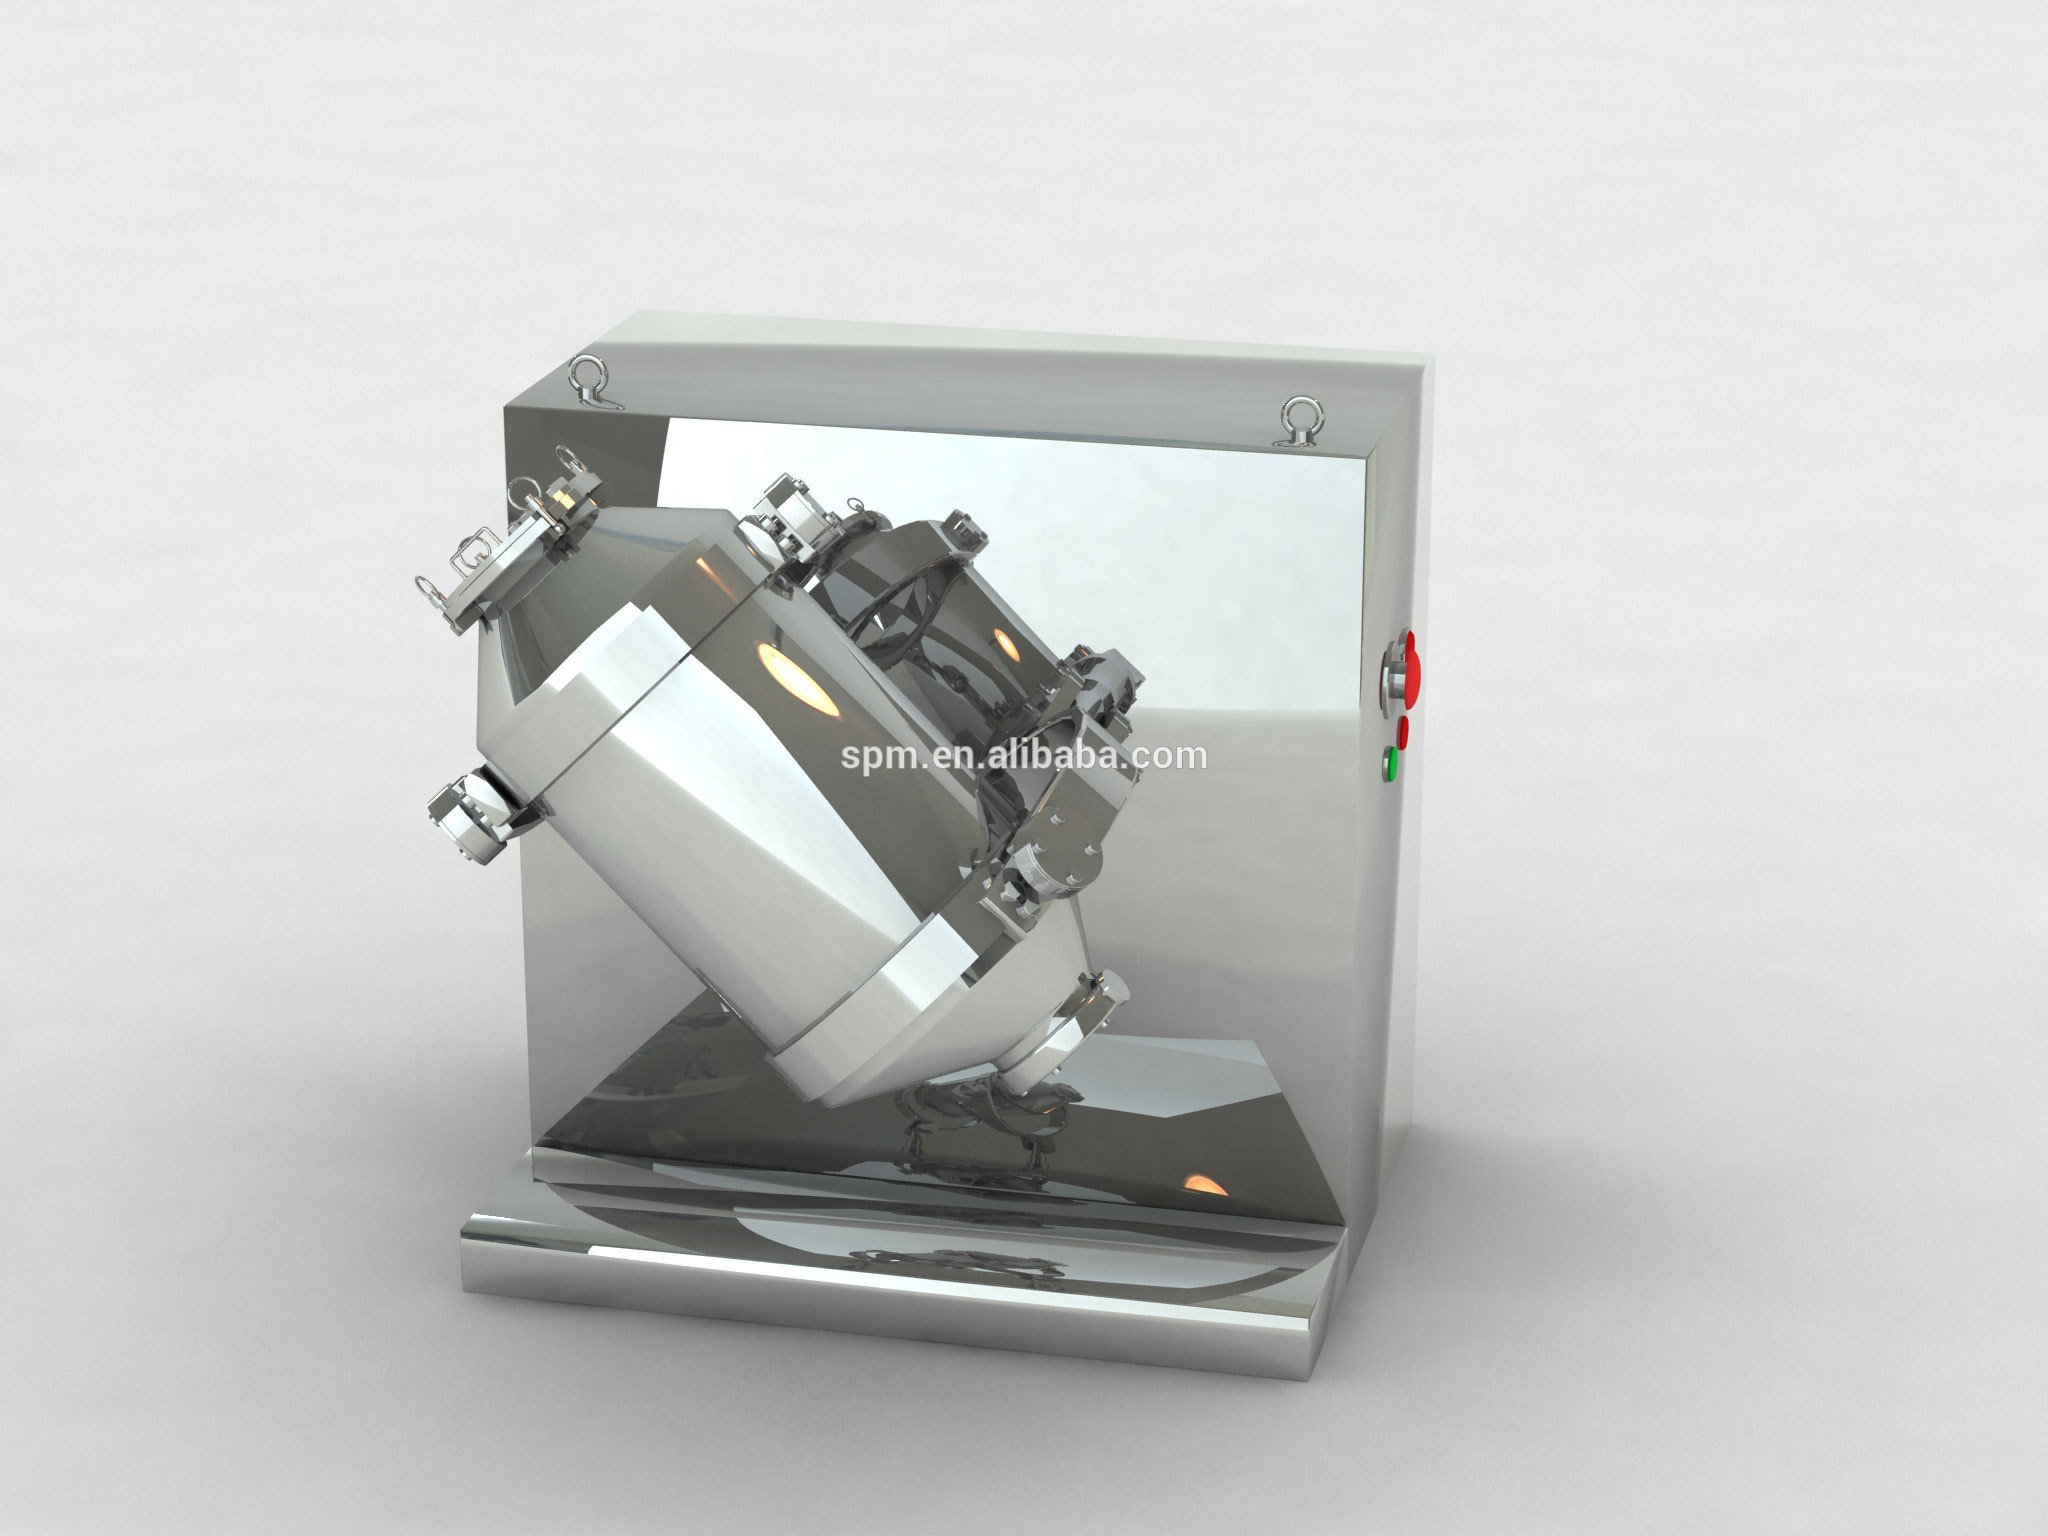 3D Motion Powder Mixer